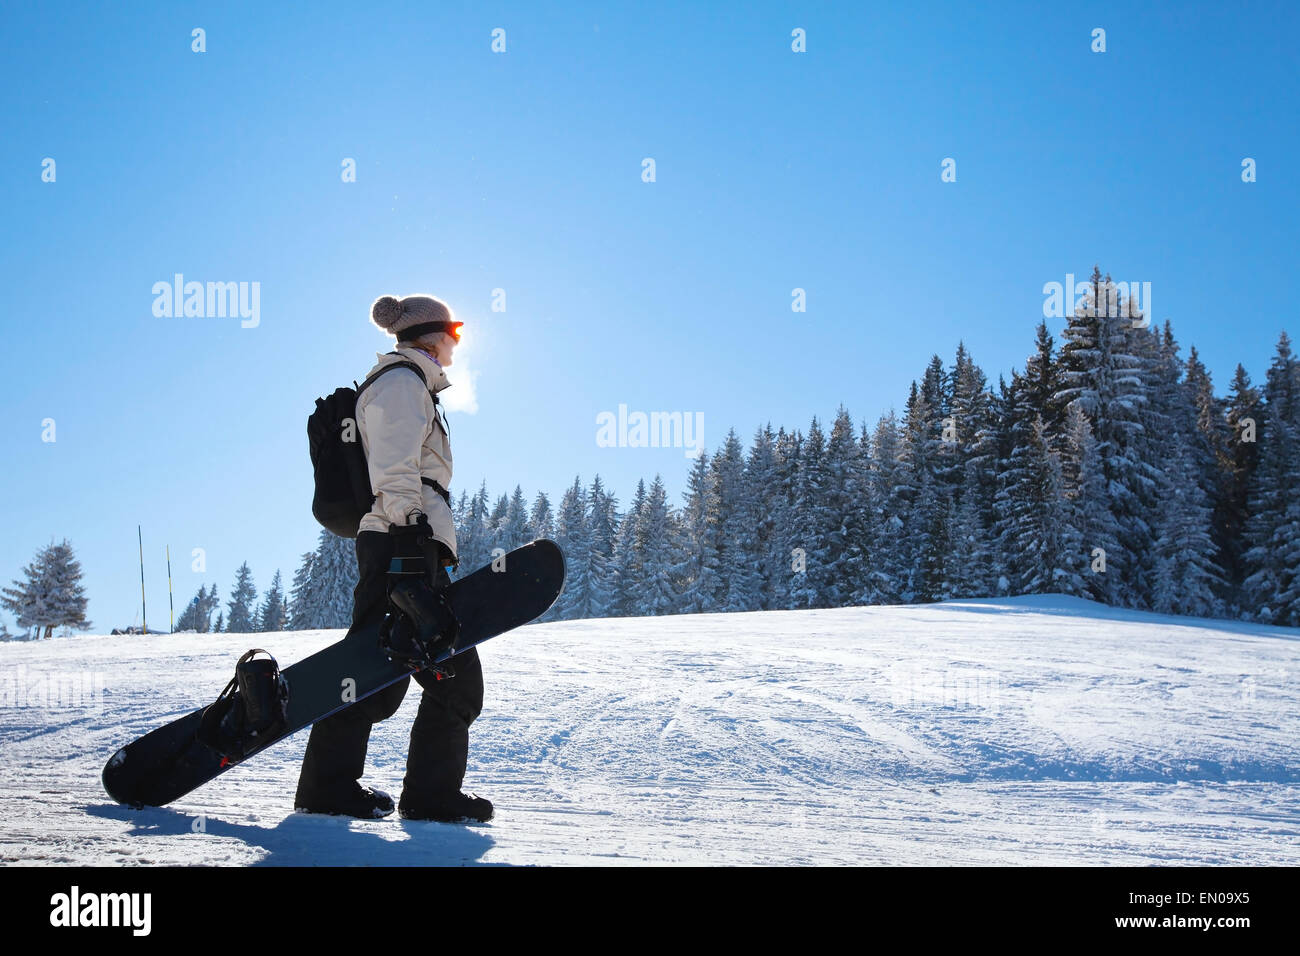 silhouette of woman with snowboard on the ski slope - Stock Image